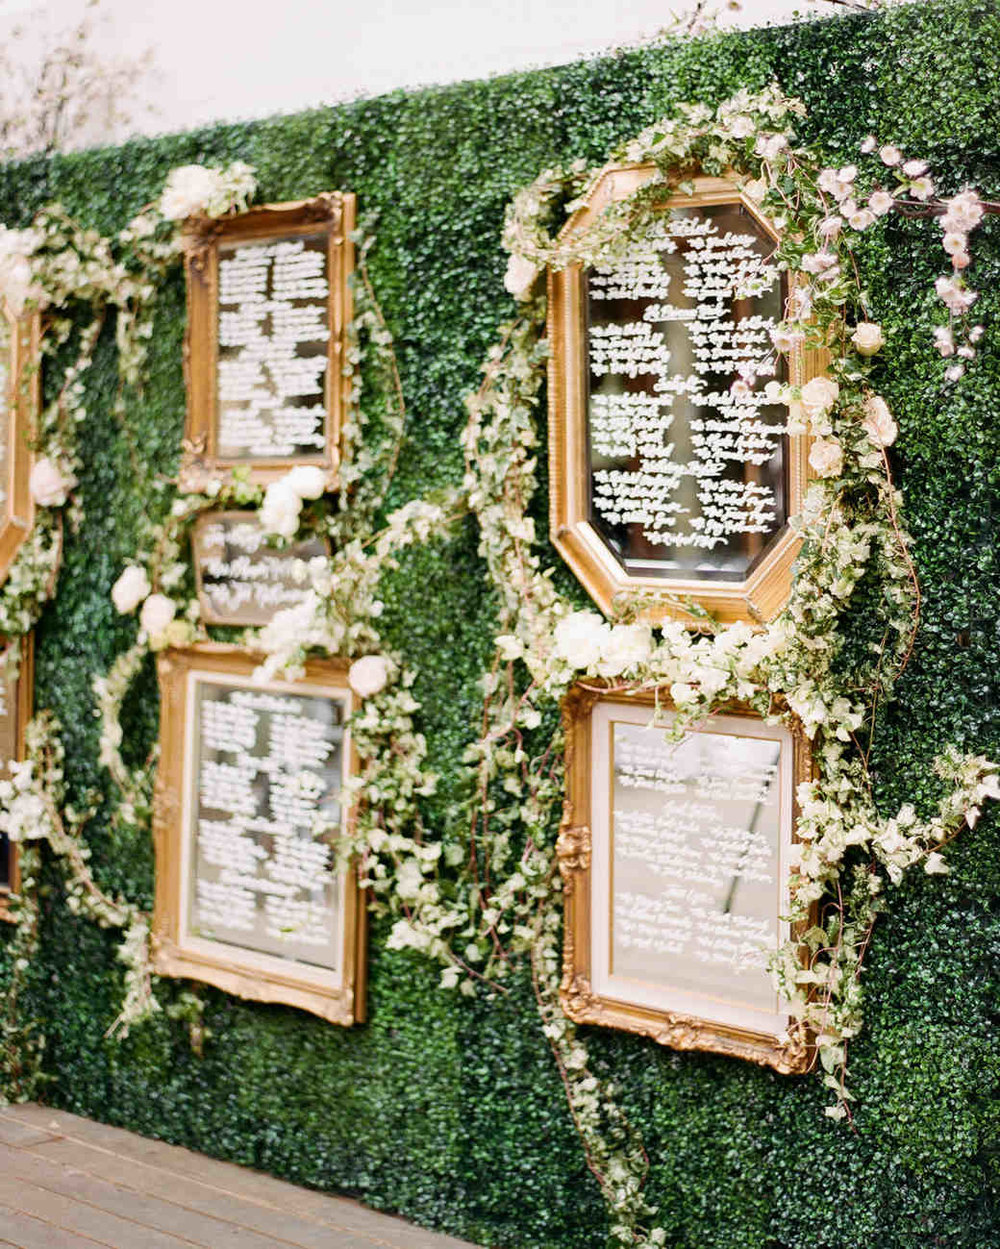 shannon-jon-wedding-seatingchart-0635-6238579-0117_vert.jpg